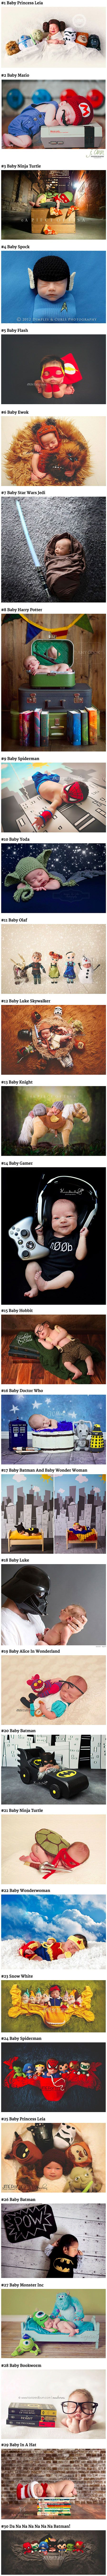 Photographers capture 30 babies who might grow up to be super geeks.